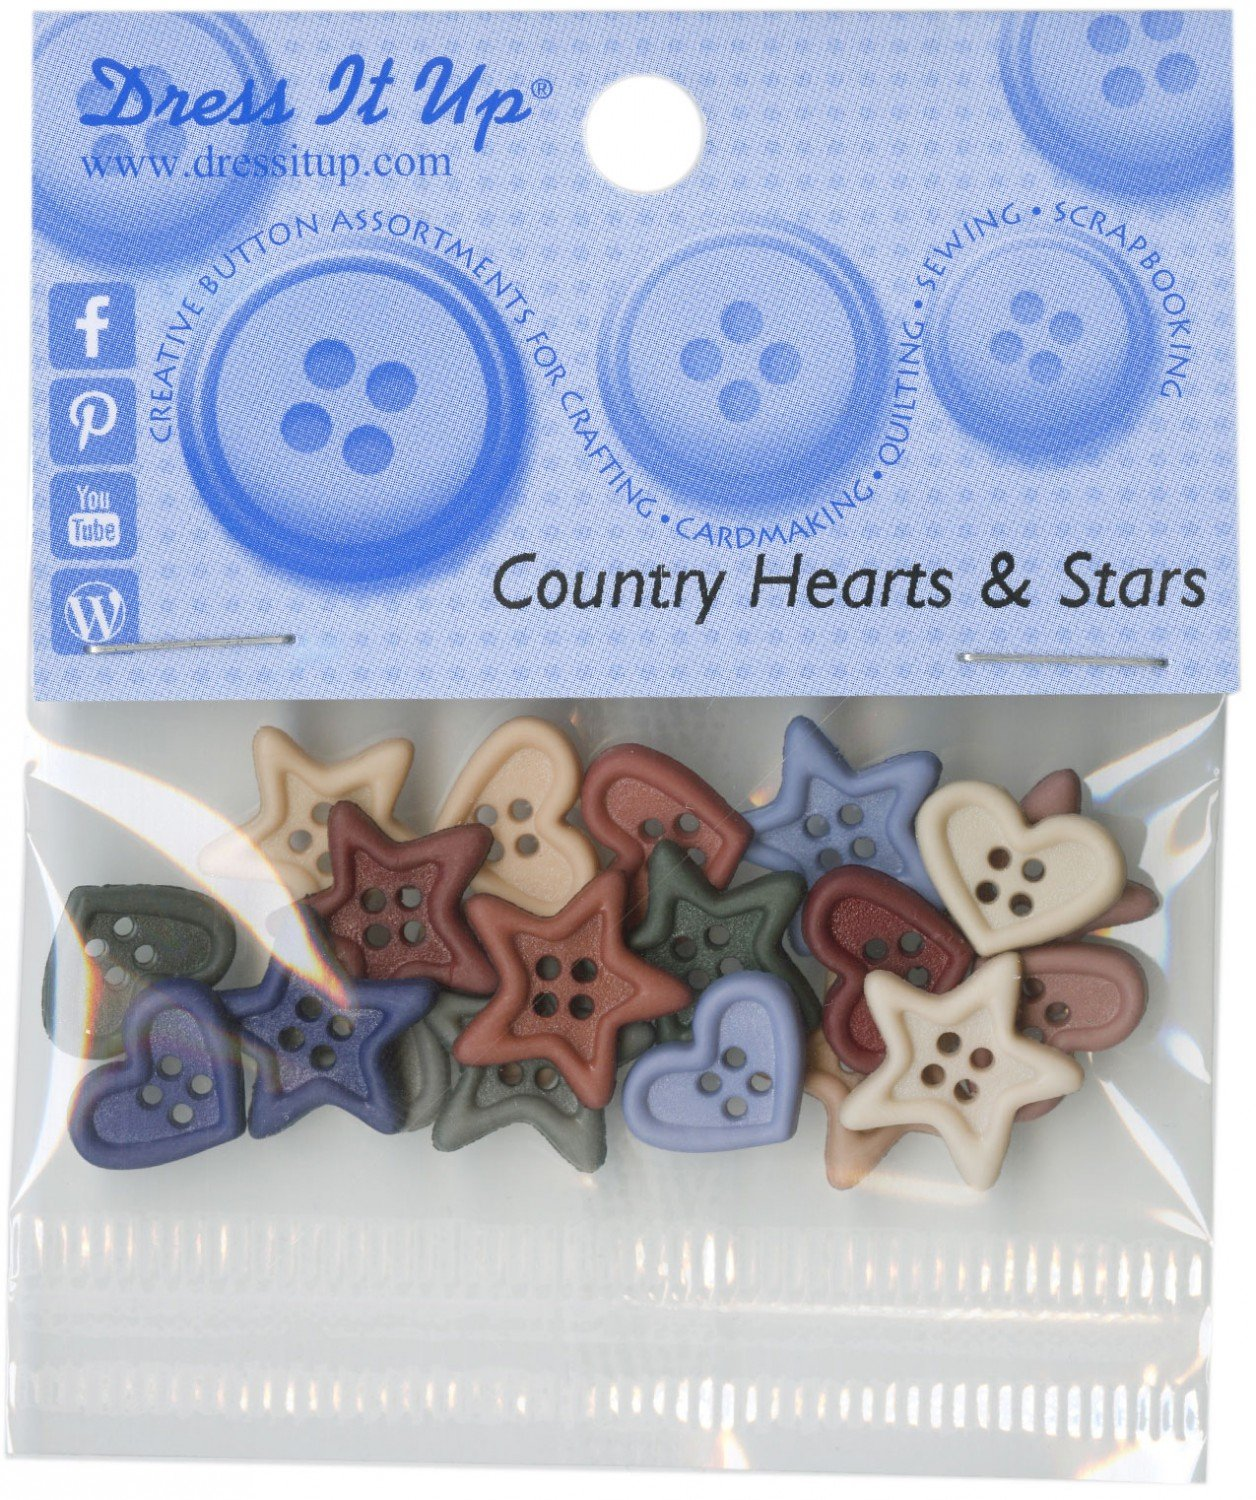 Country Hearts & Stars buttons